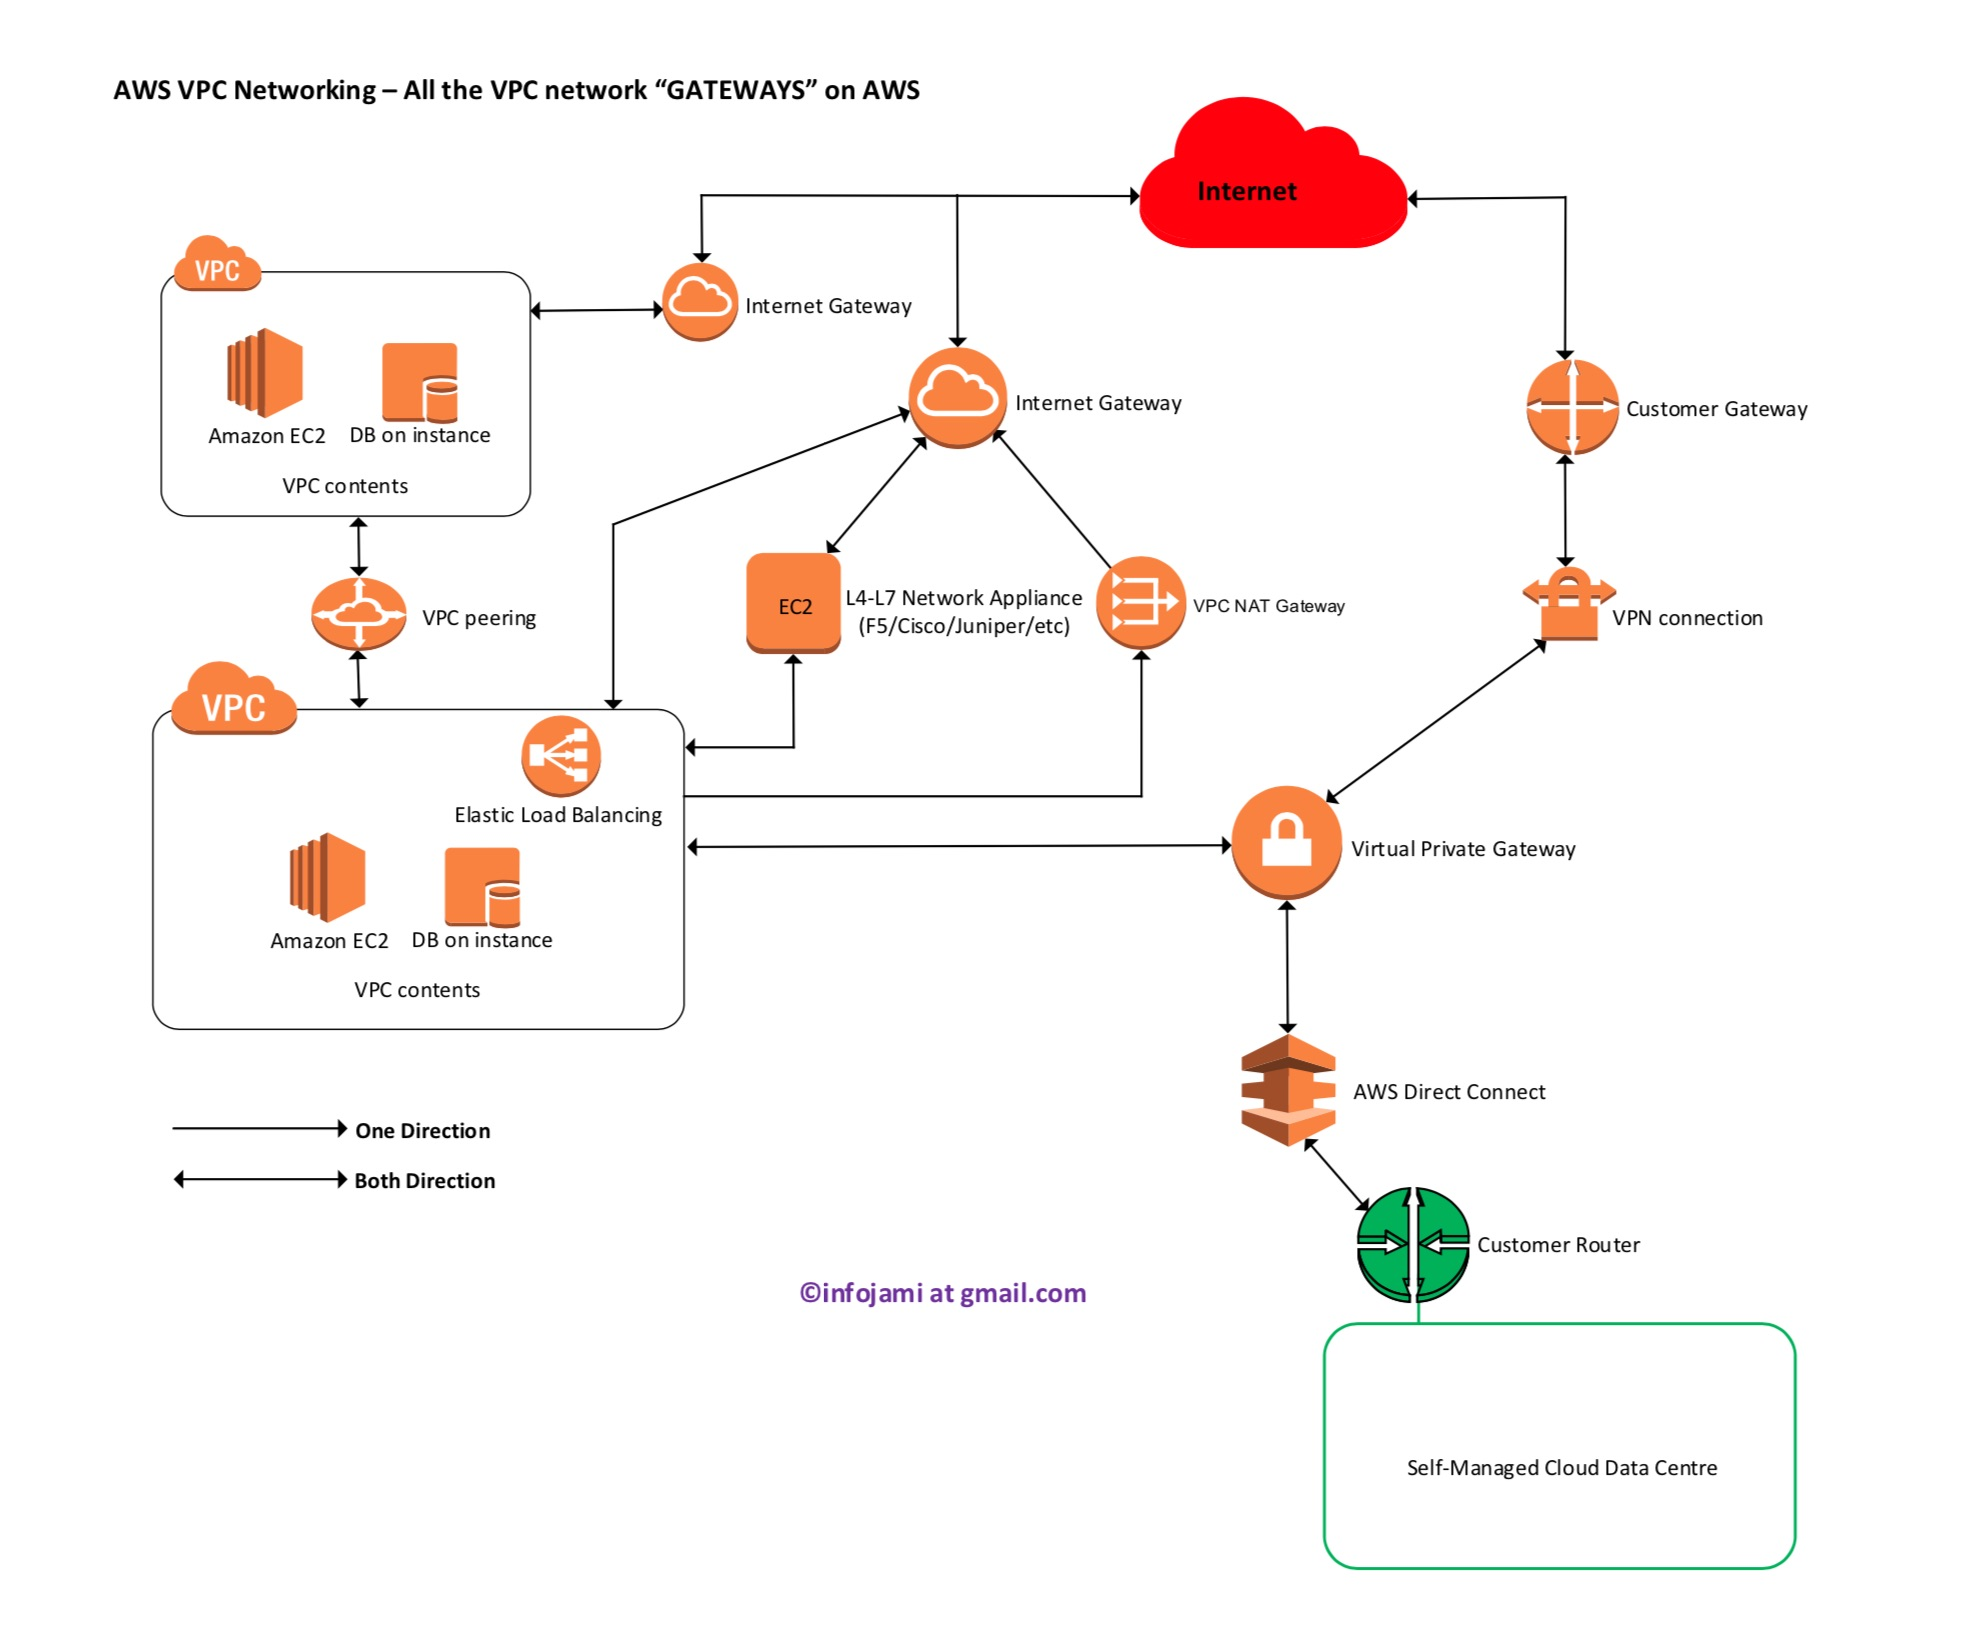 AWS VPC Networking – discussing all type of VPC network